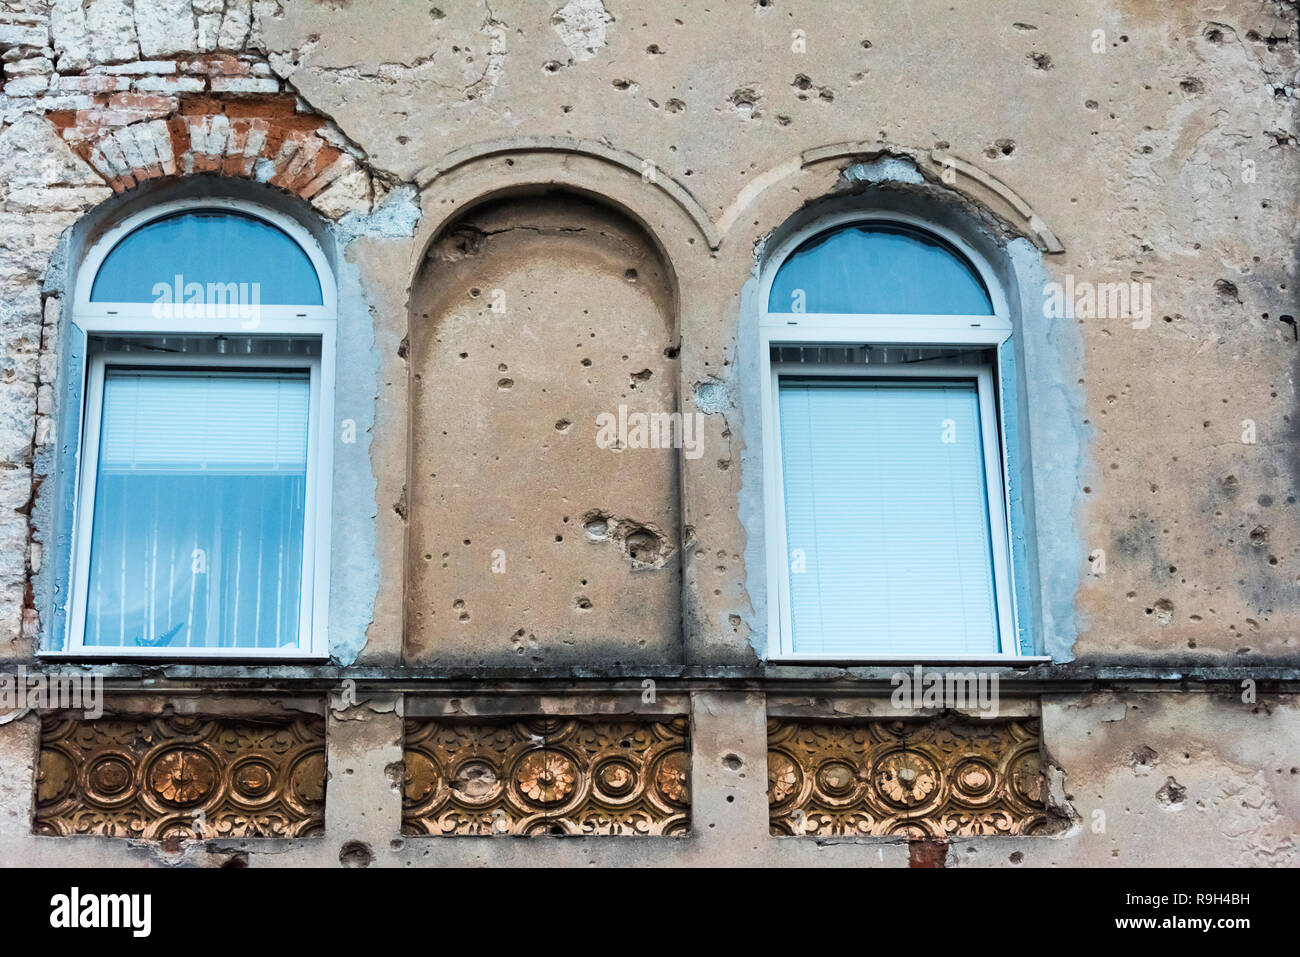 Old house with bullet holes, Mostar, Bosnia and Herzegovina Stock Photo